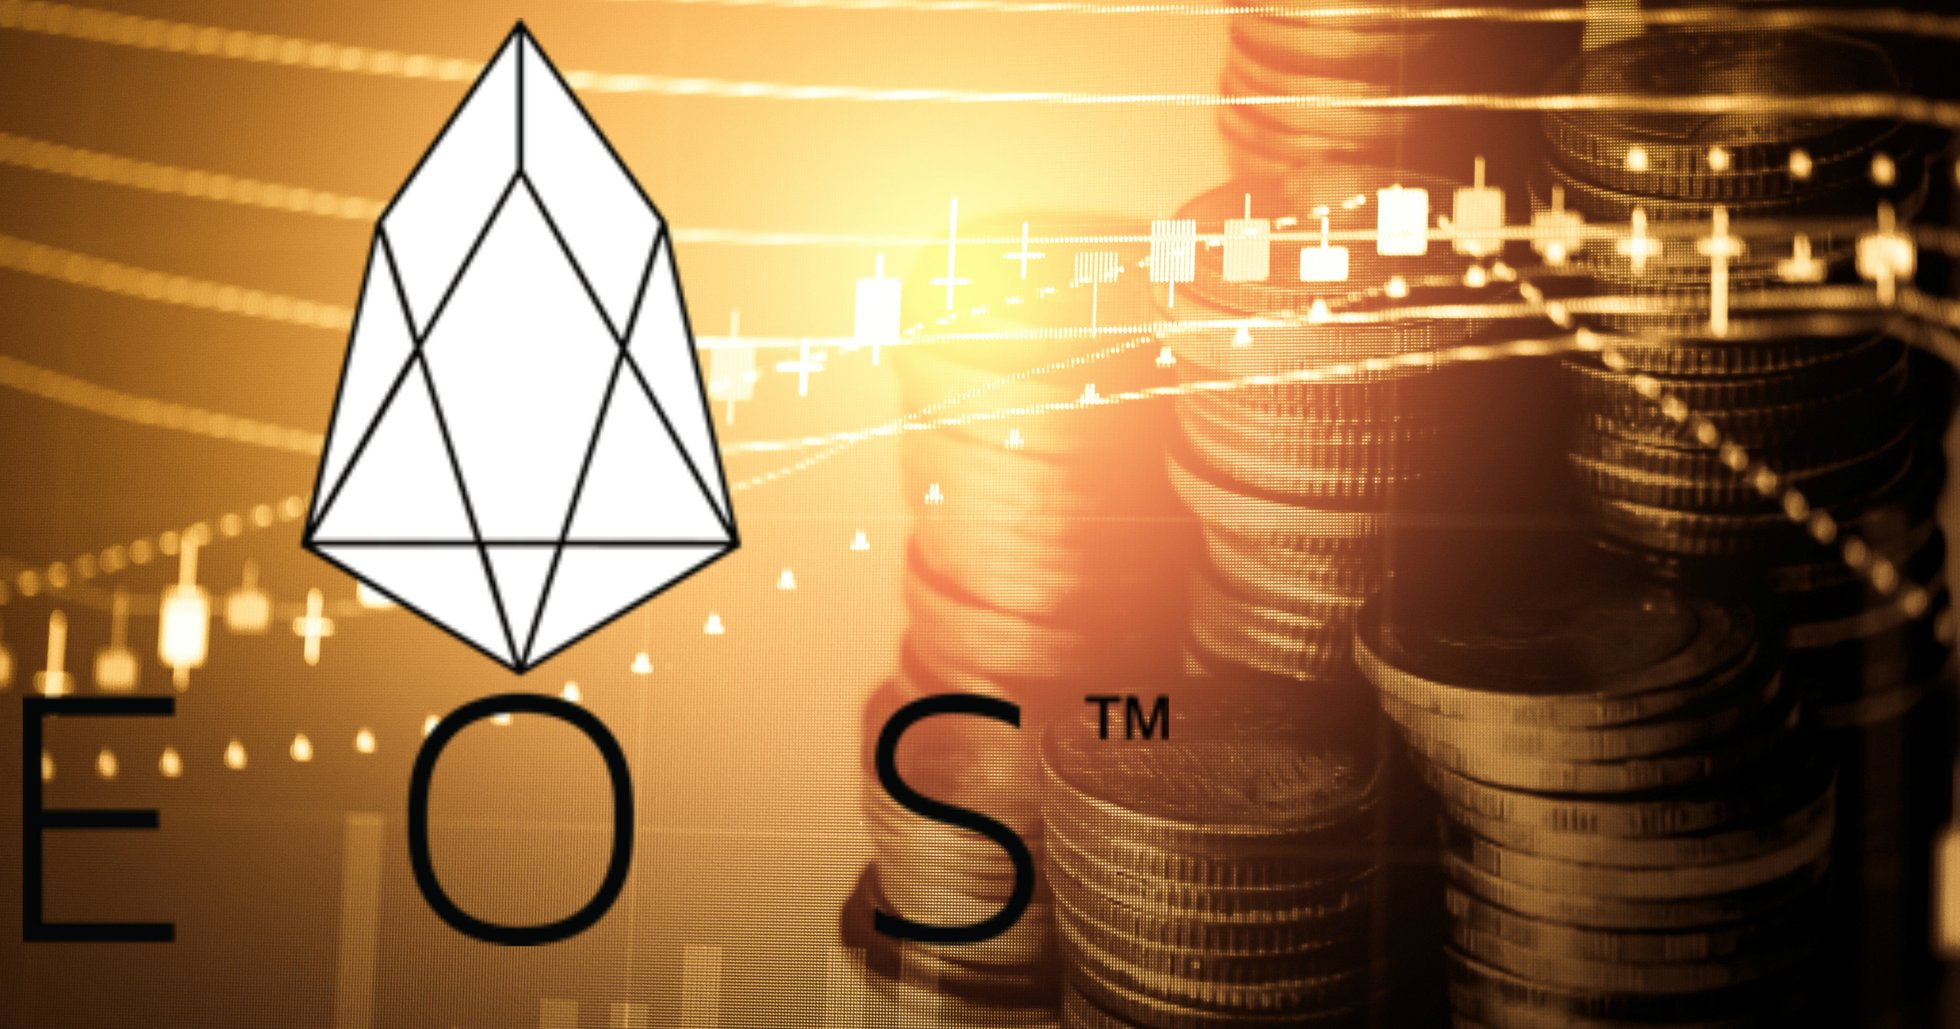 The world's largest ICO has ended – this is what's happening to eos now.